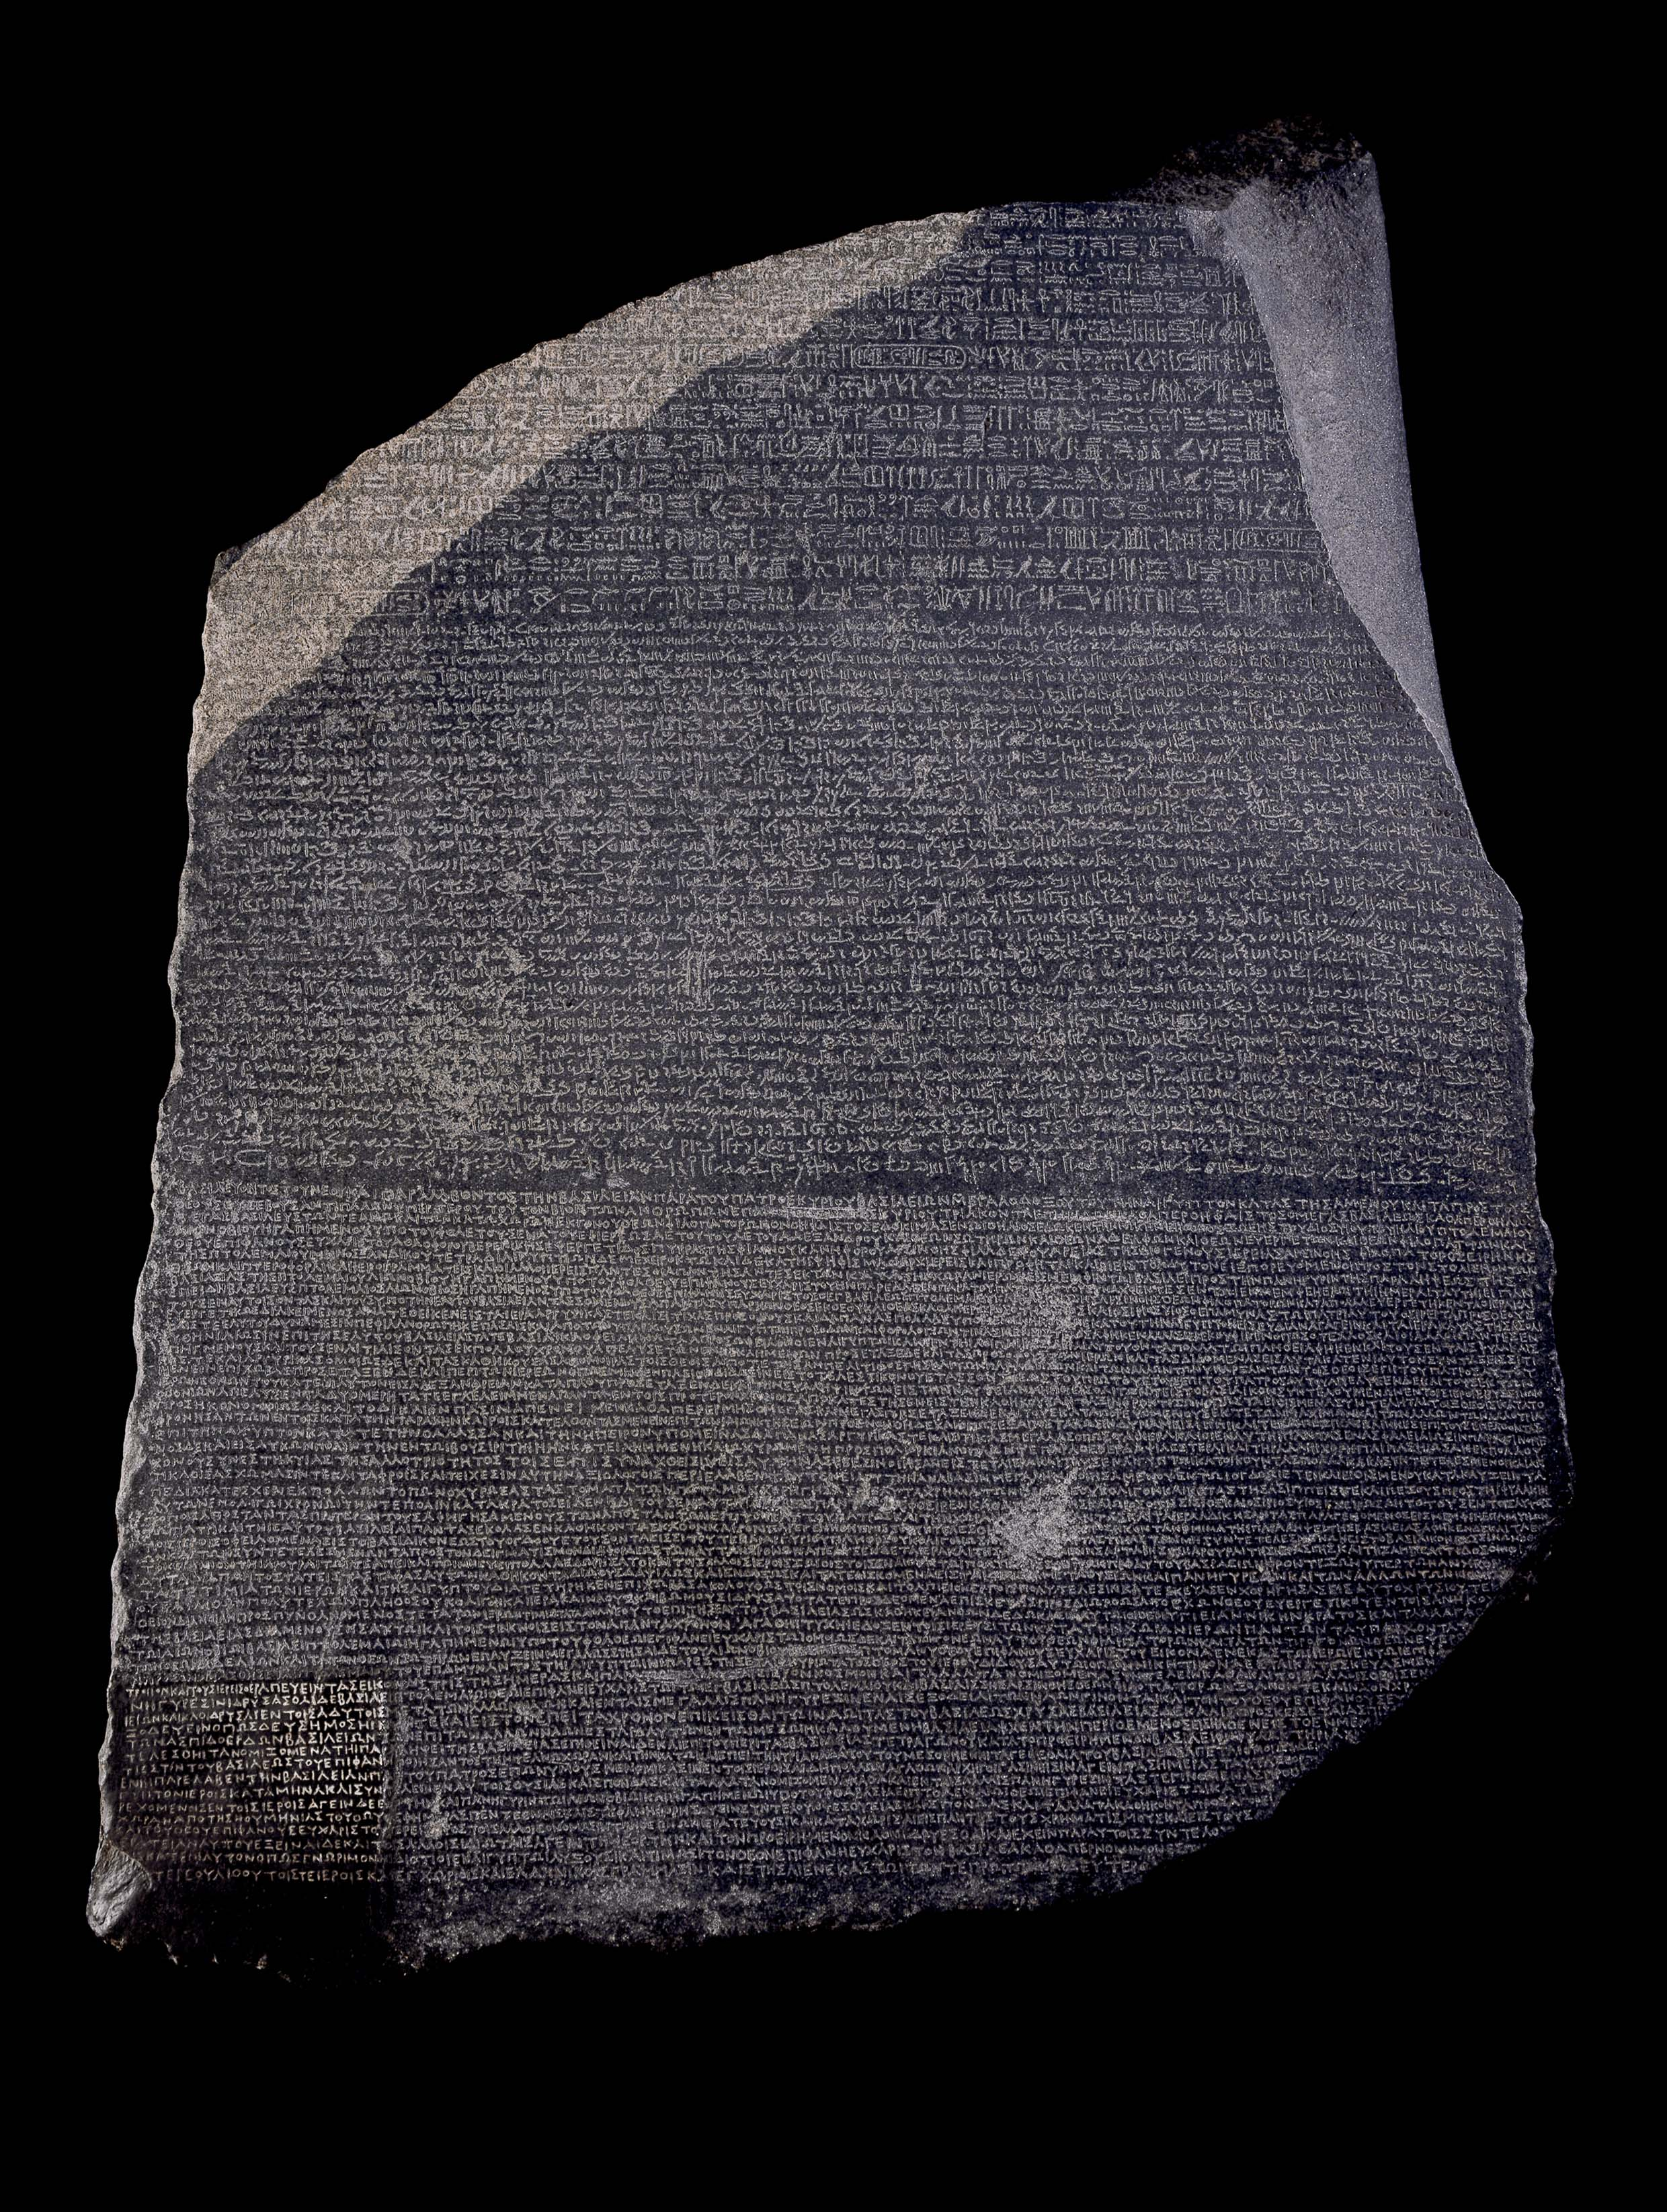 Space in Images - 2002 - 11 - The Rosetta Stone ... Rosetta Stone